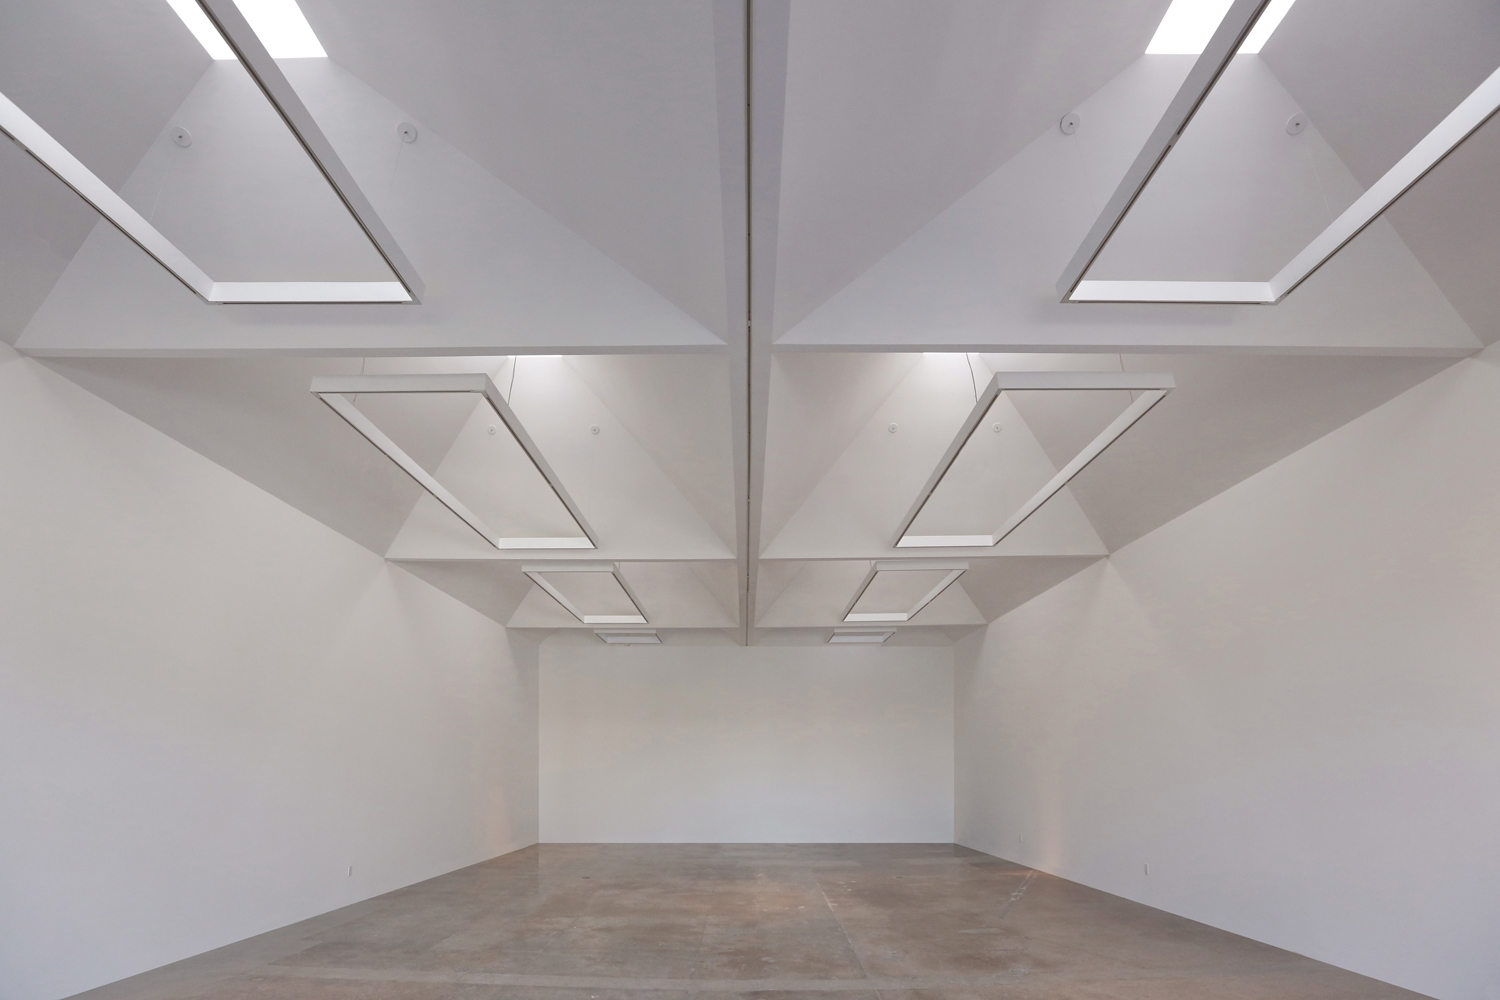 Kayne Griffin Corcoran Gallery